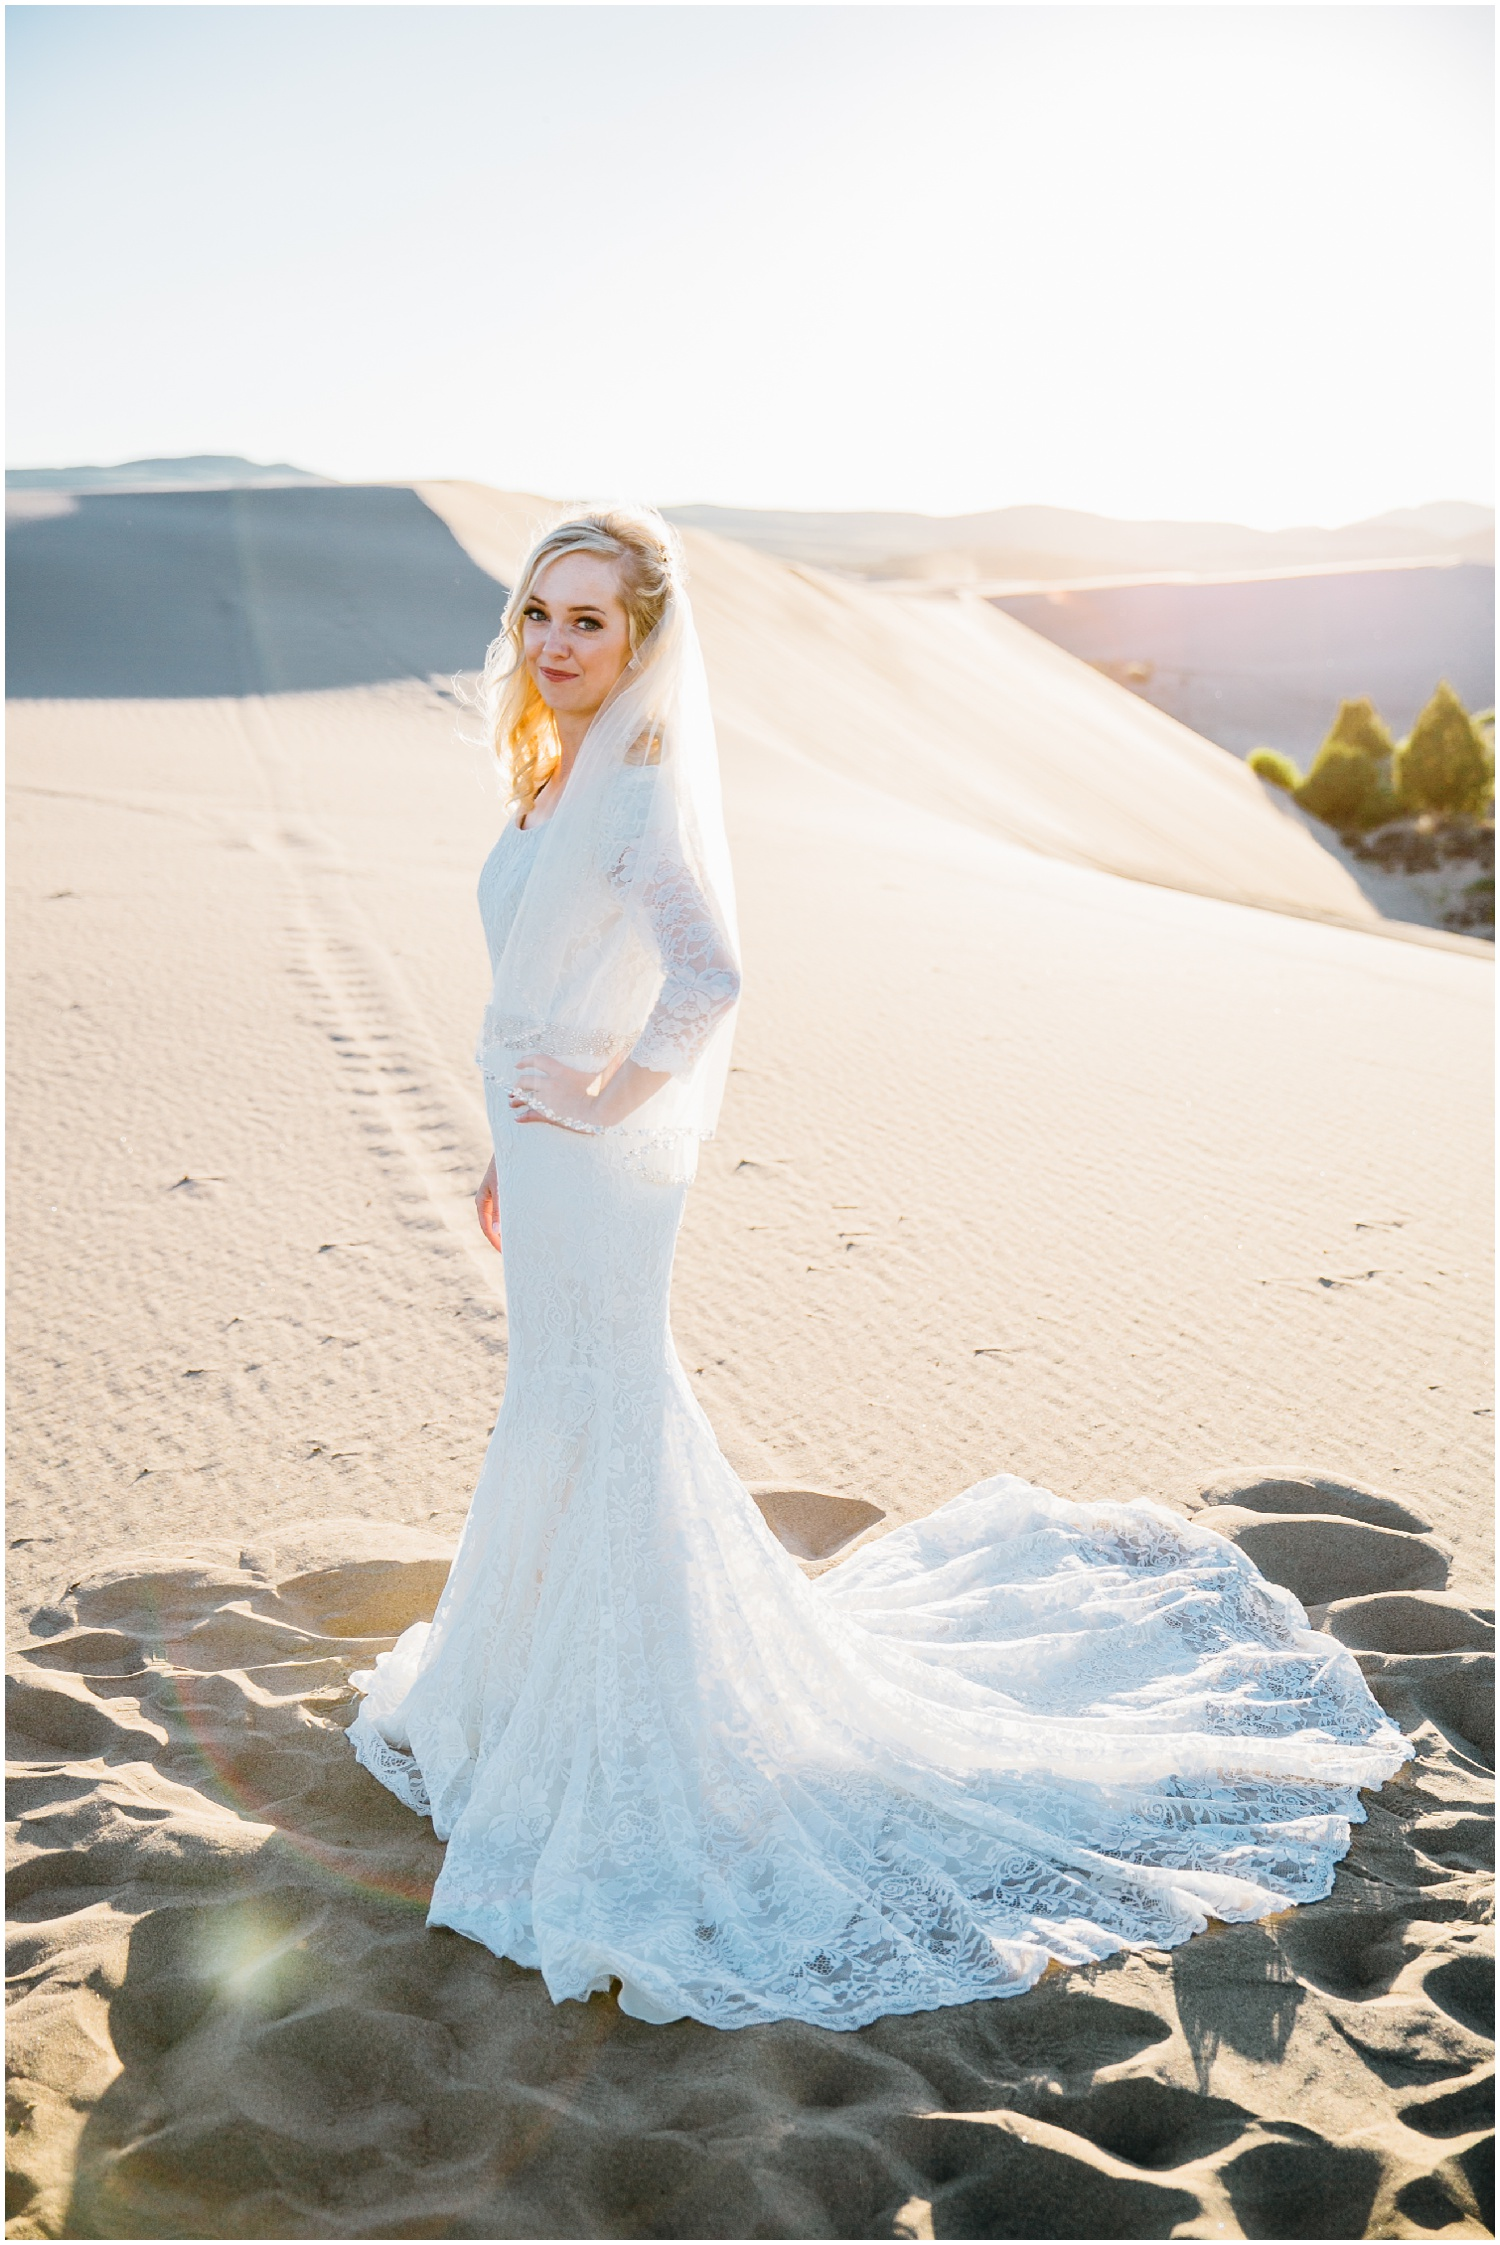 saint-anthony-sand-dunes-bridals-idaho-engagements-colorado-wyoming-wedding-photographer_0733.jpg